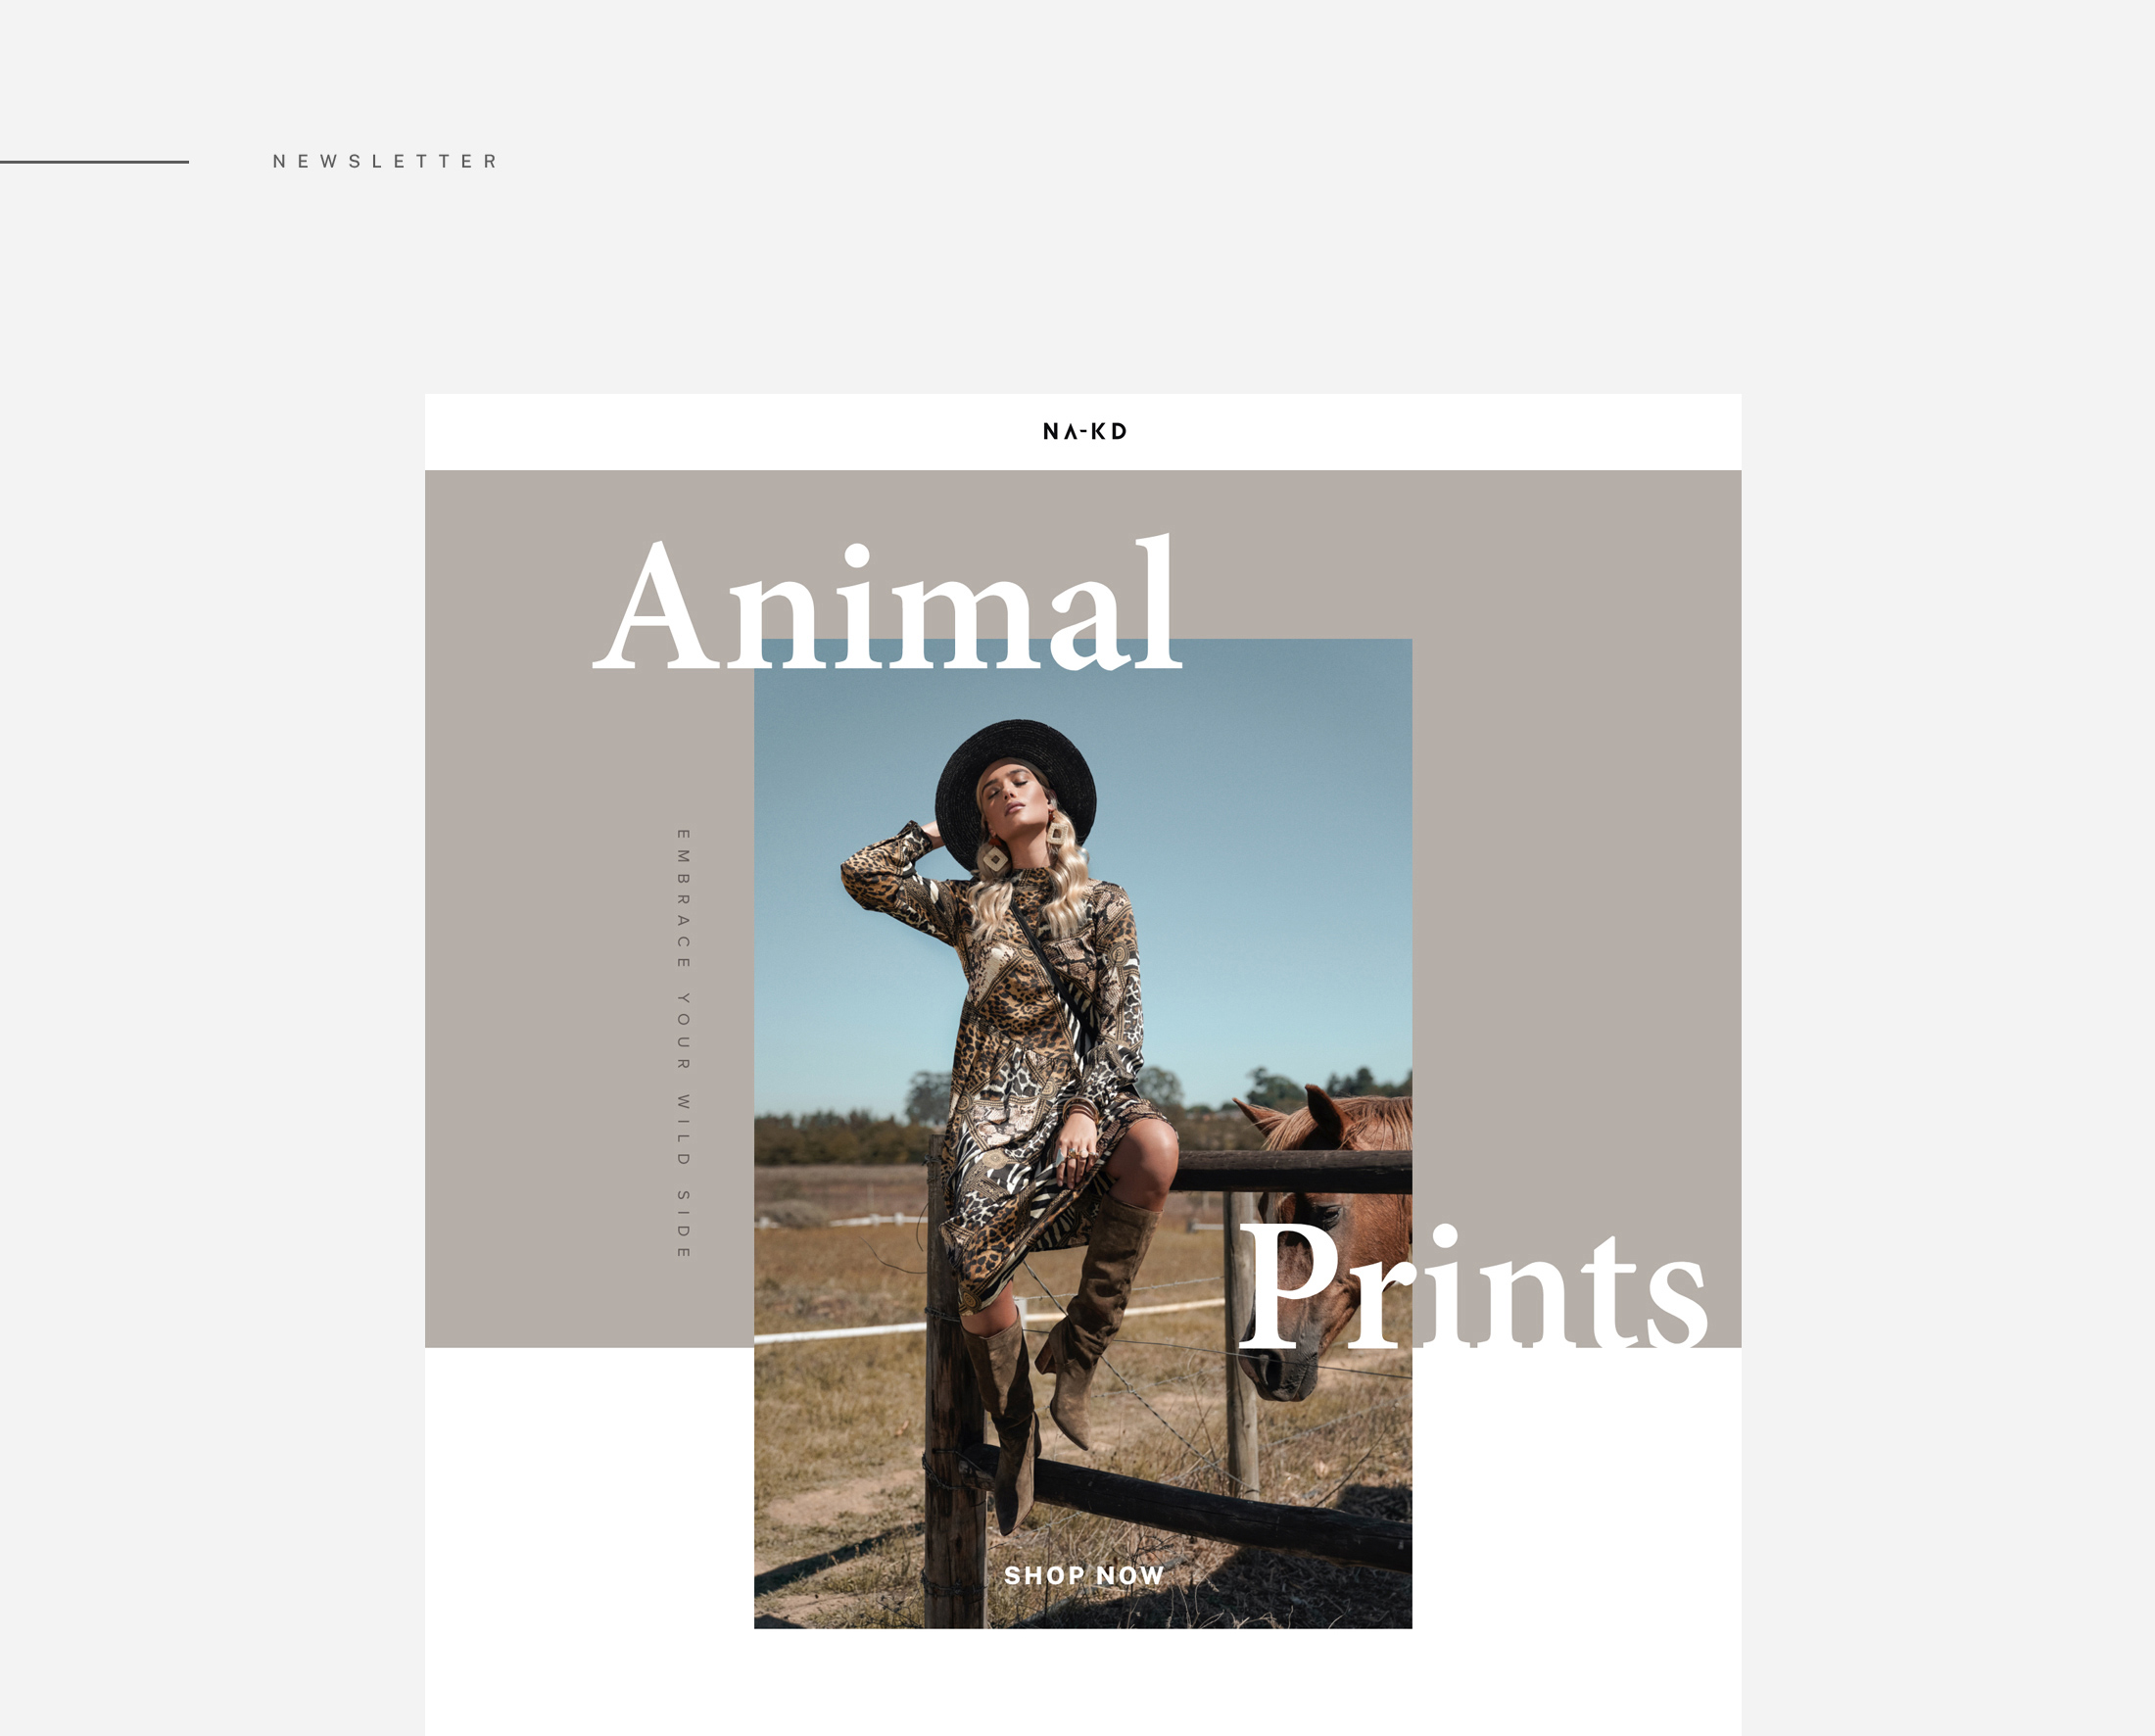 UI Design Newsletter Fashion Campaign Animal Prints